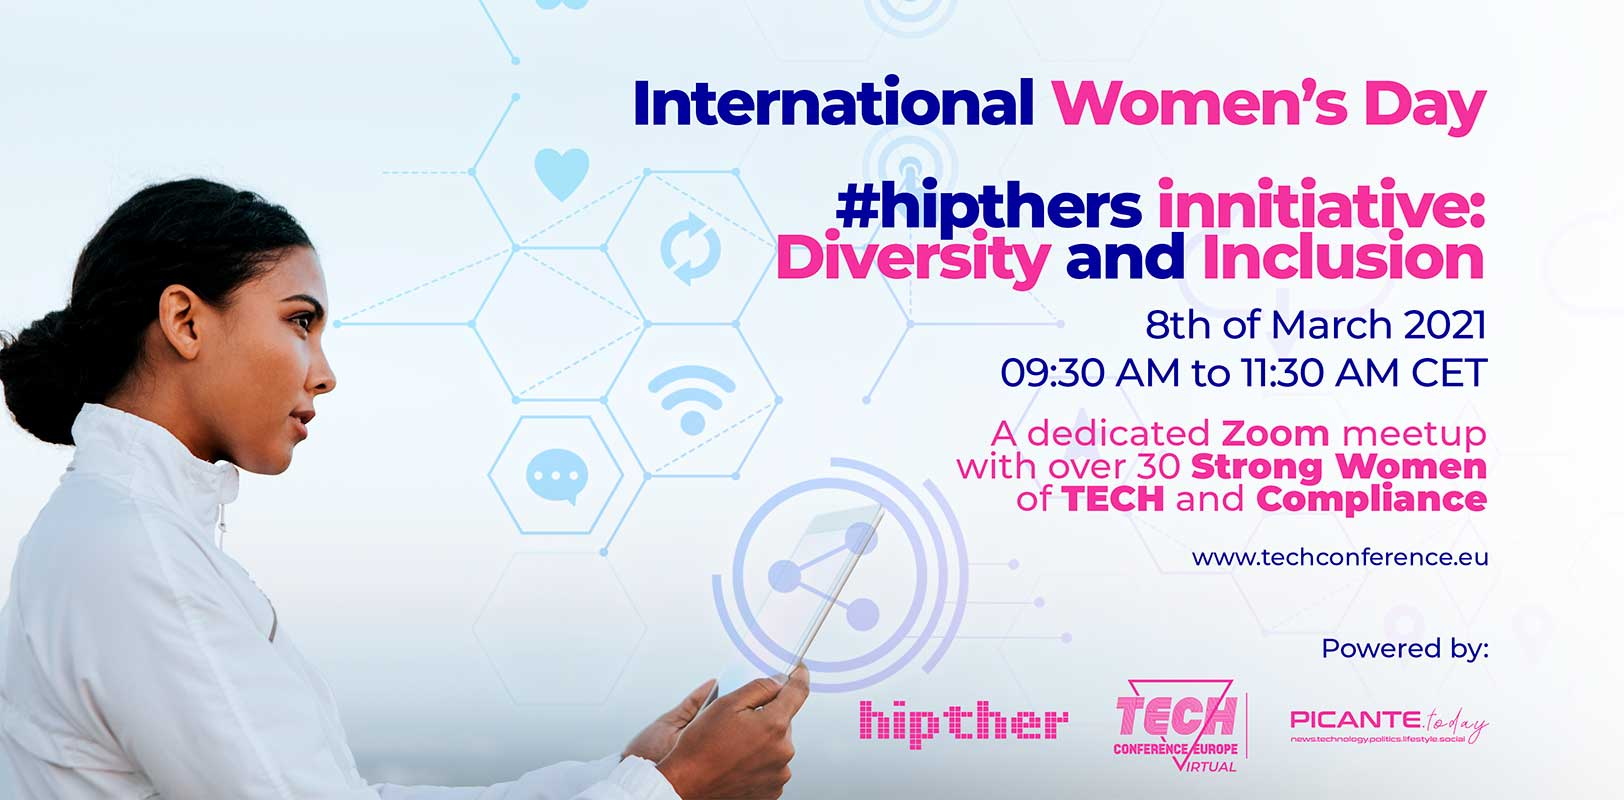 You are invited to the International Women's Day initiative by the #hipthers (online meetup on Diversity and Inclusion)